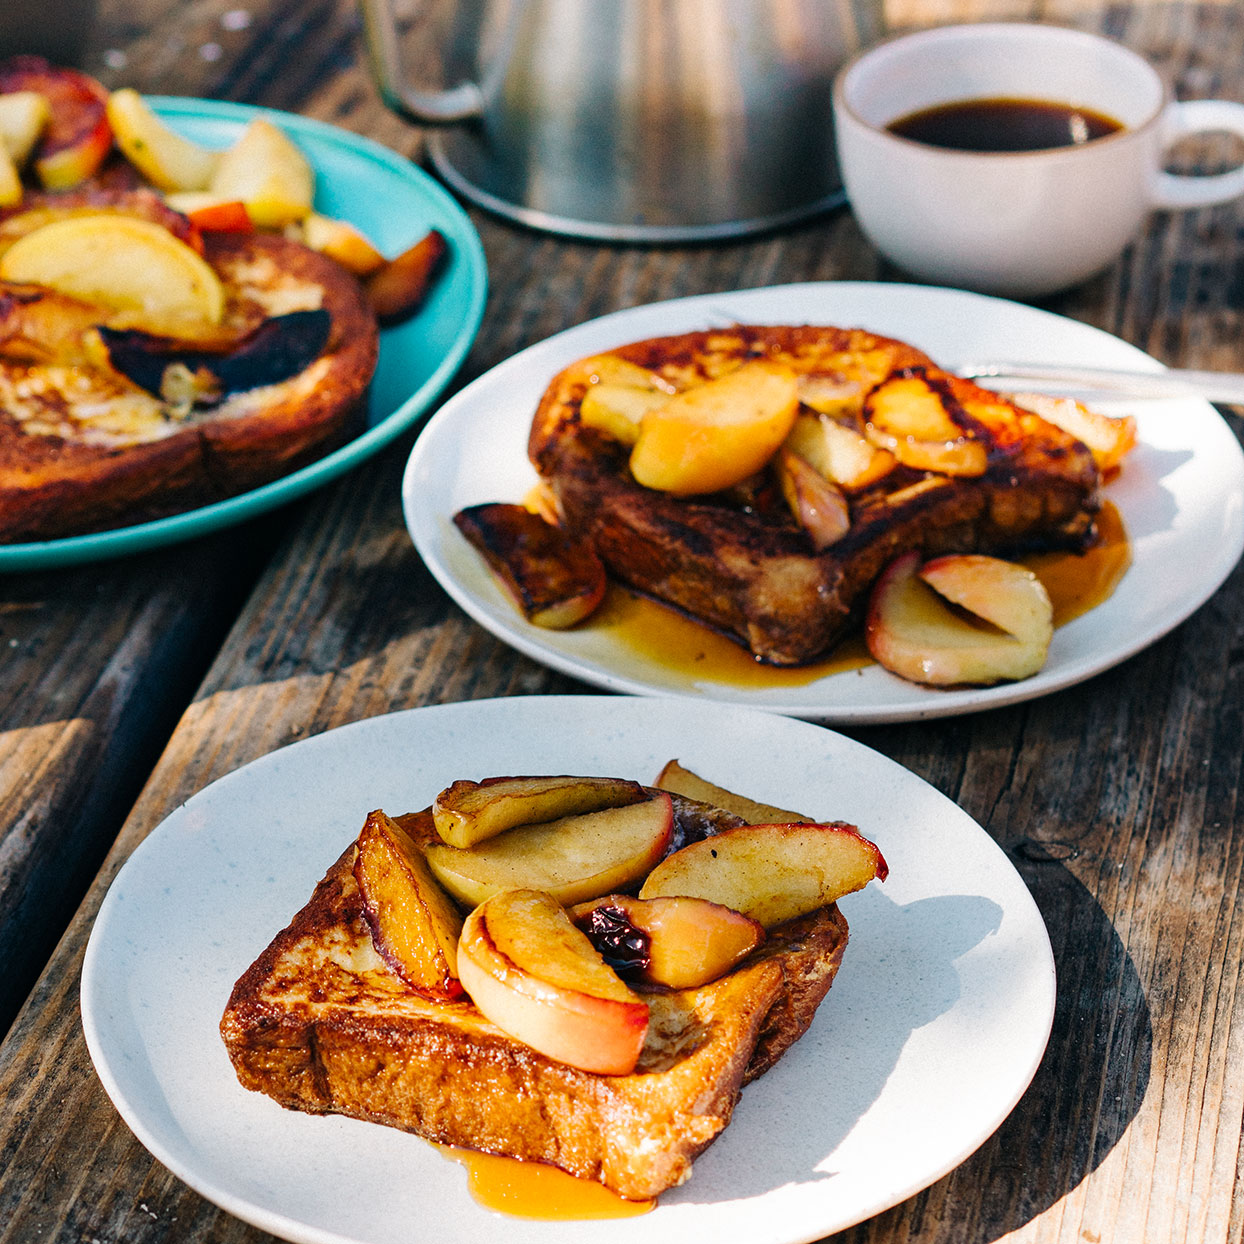 This brioche French toast recipe calls for cooking the bread and the apples over high heat in coconut oil--a fat with a high smoke point that adds its own delicious flavor--for a nicely caramelized crust. This recipe was developed as a deluxe breakfast for a camping trip, but you can also cook it at home on the stovetop. Source: EatingWell Magazine, June 2020